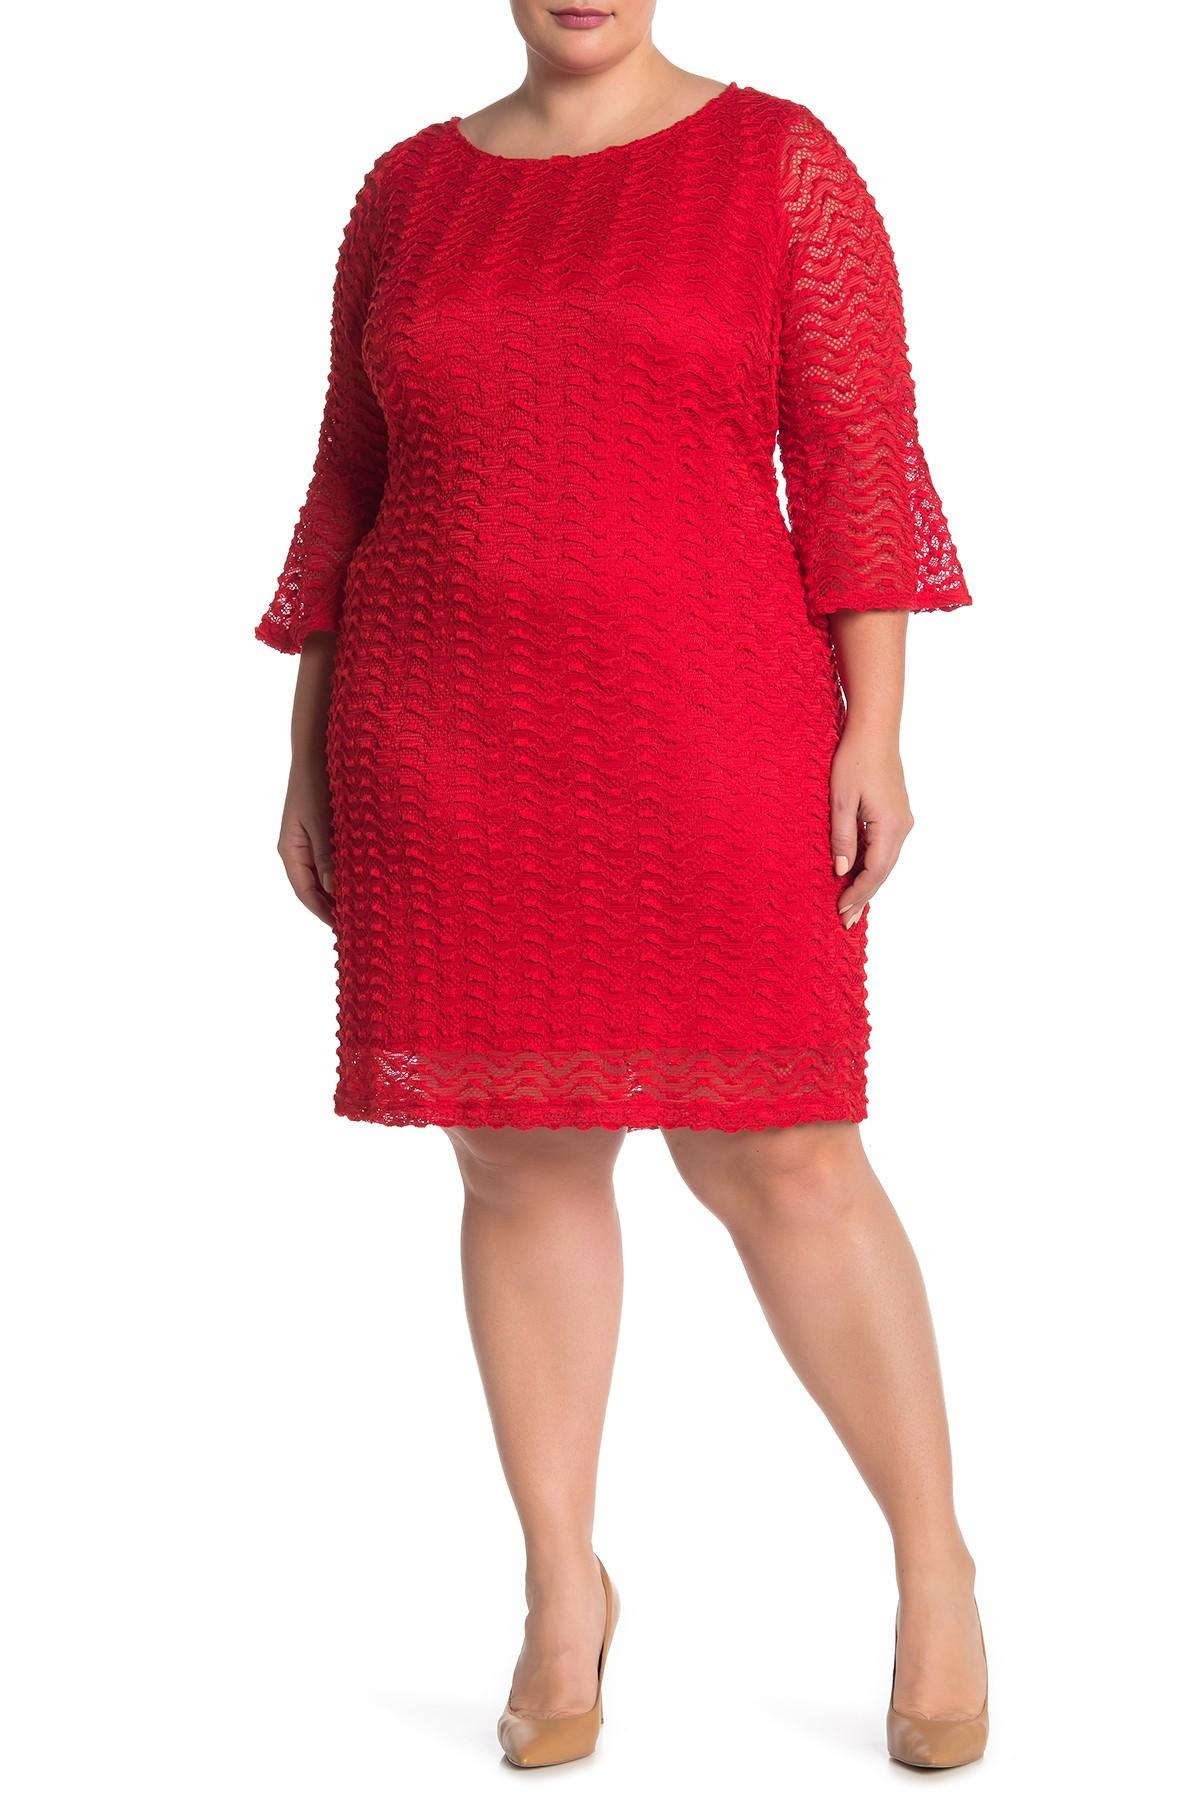 45c1967324b Lyst - Sharagano Textured Lace Bell Sleeve Dress (plus Size) in Red